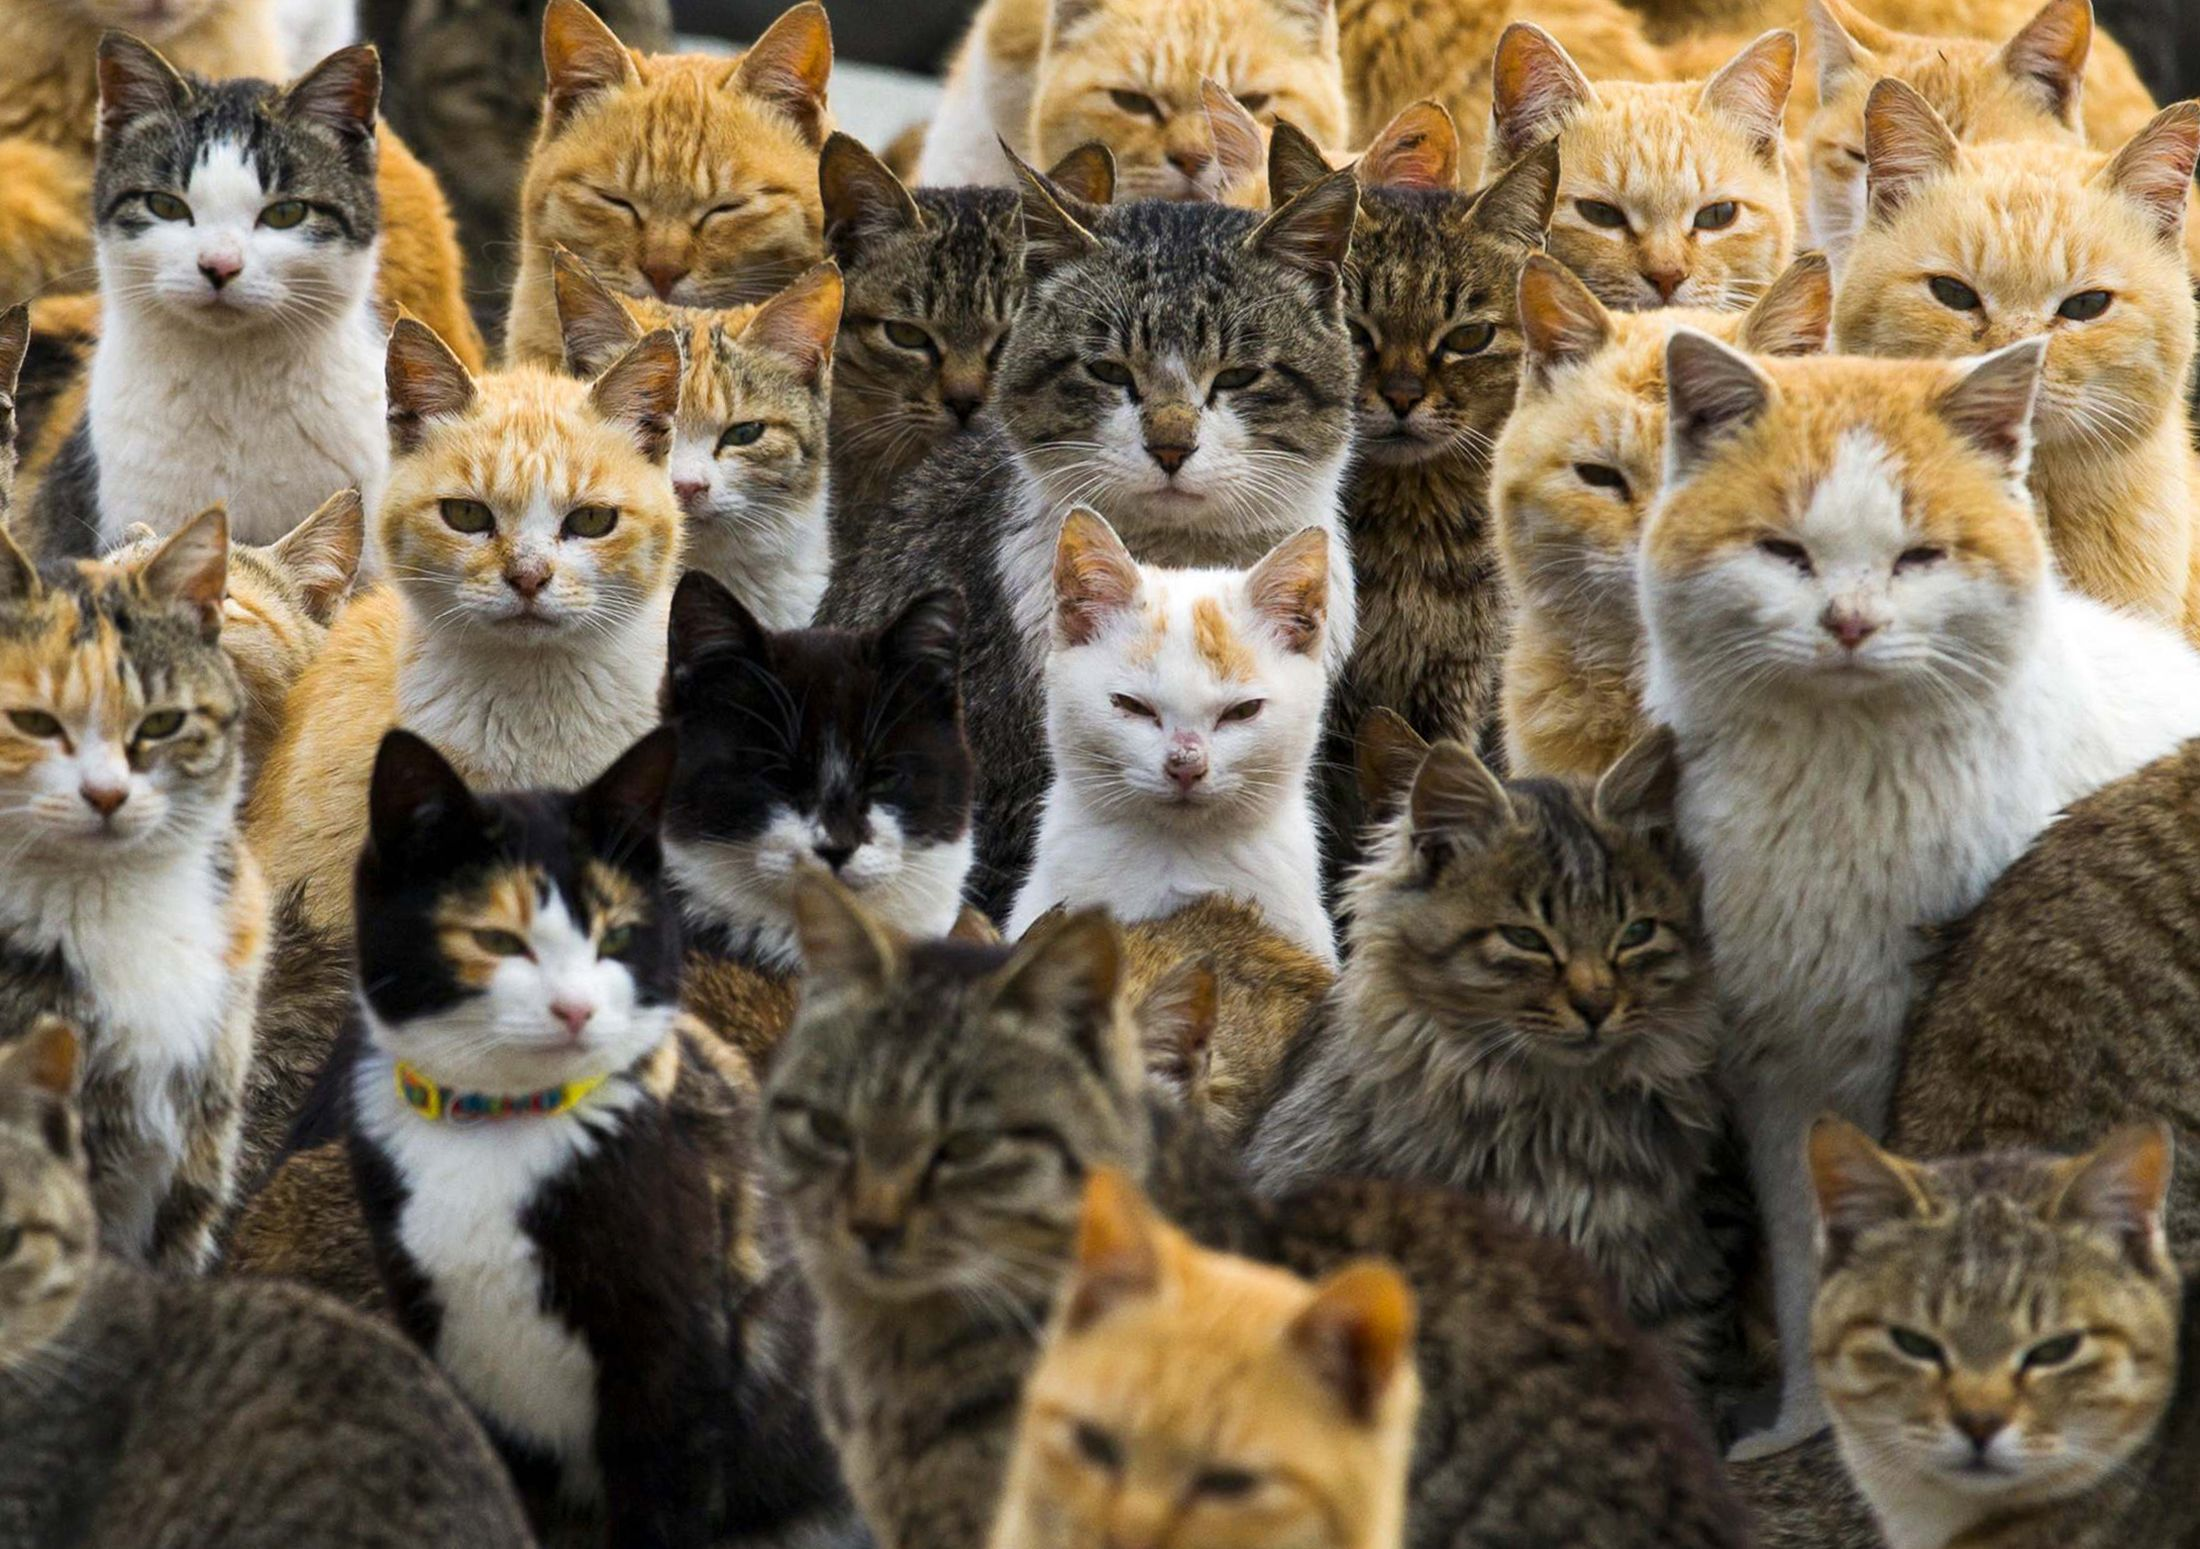 Toxoplasmosis in cats: is it dangerous